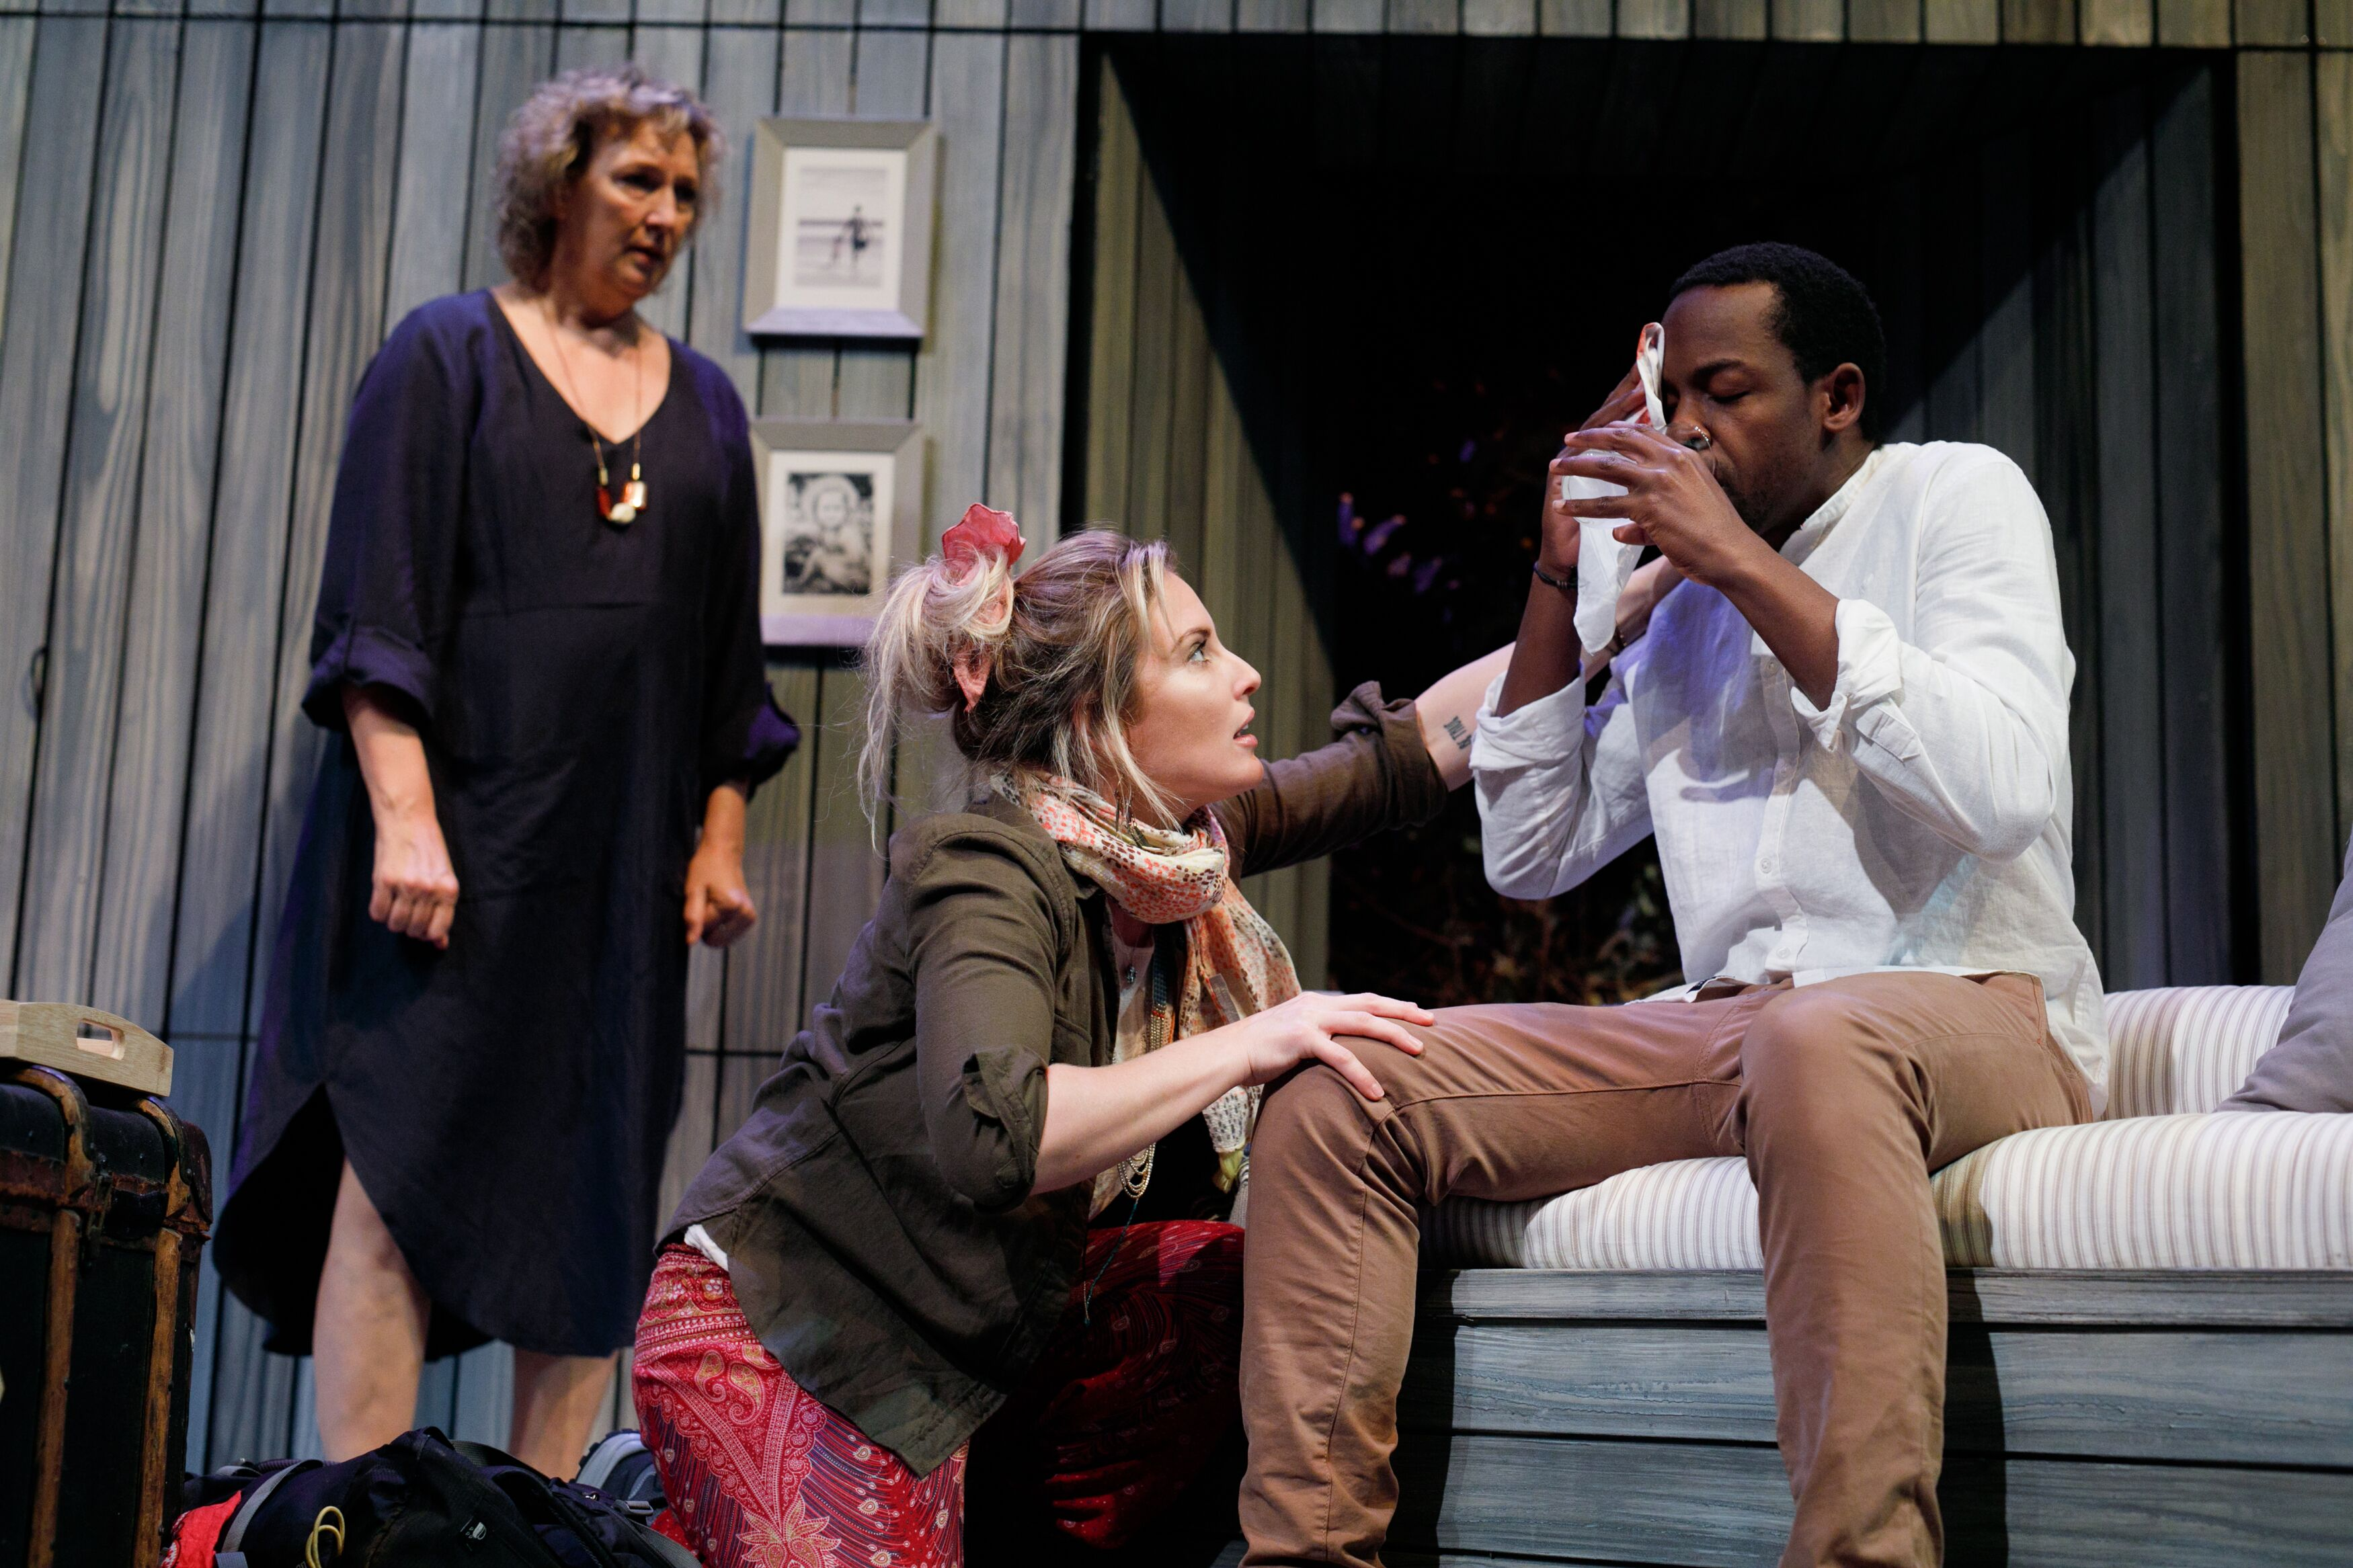 New play examines climate change and mistreatment of refugees